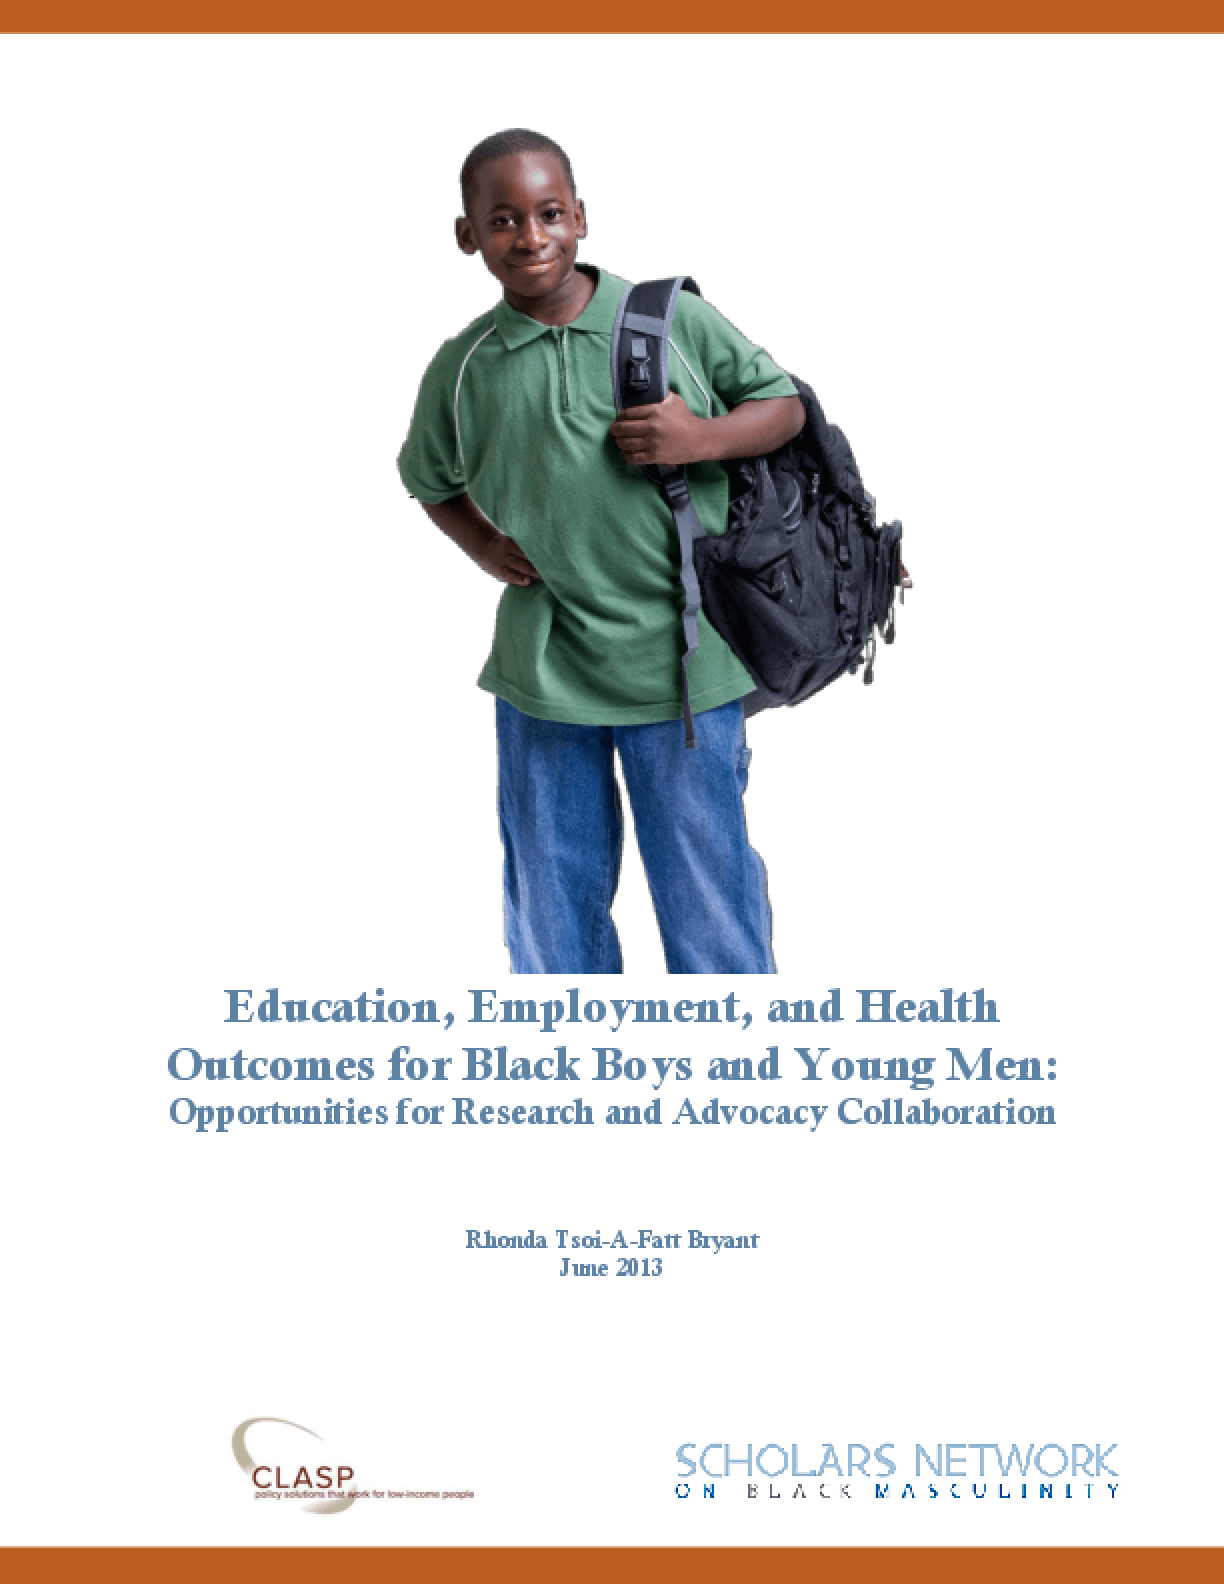 Education, Employment, and Health Outcomes for Black Boys and Young Men: Opportunities for Research and Advocacy Collaboration